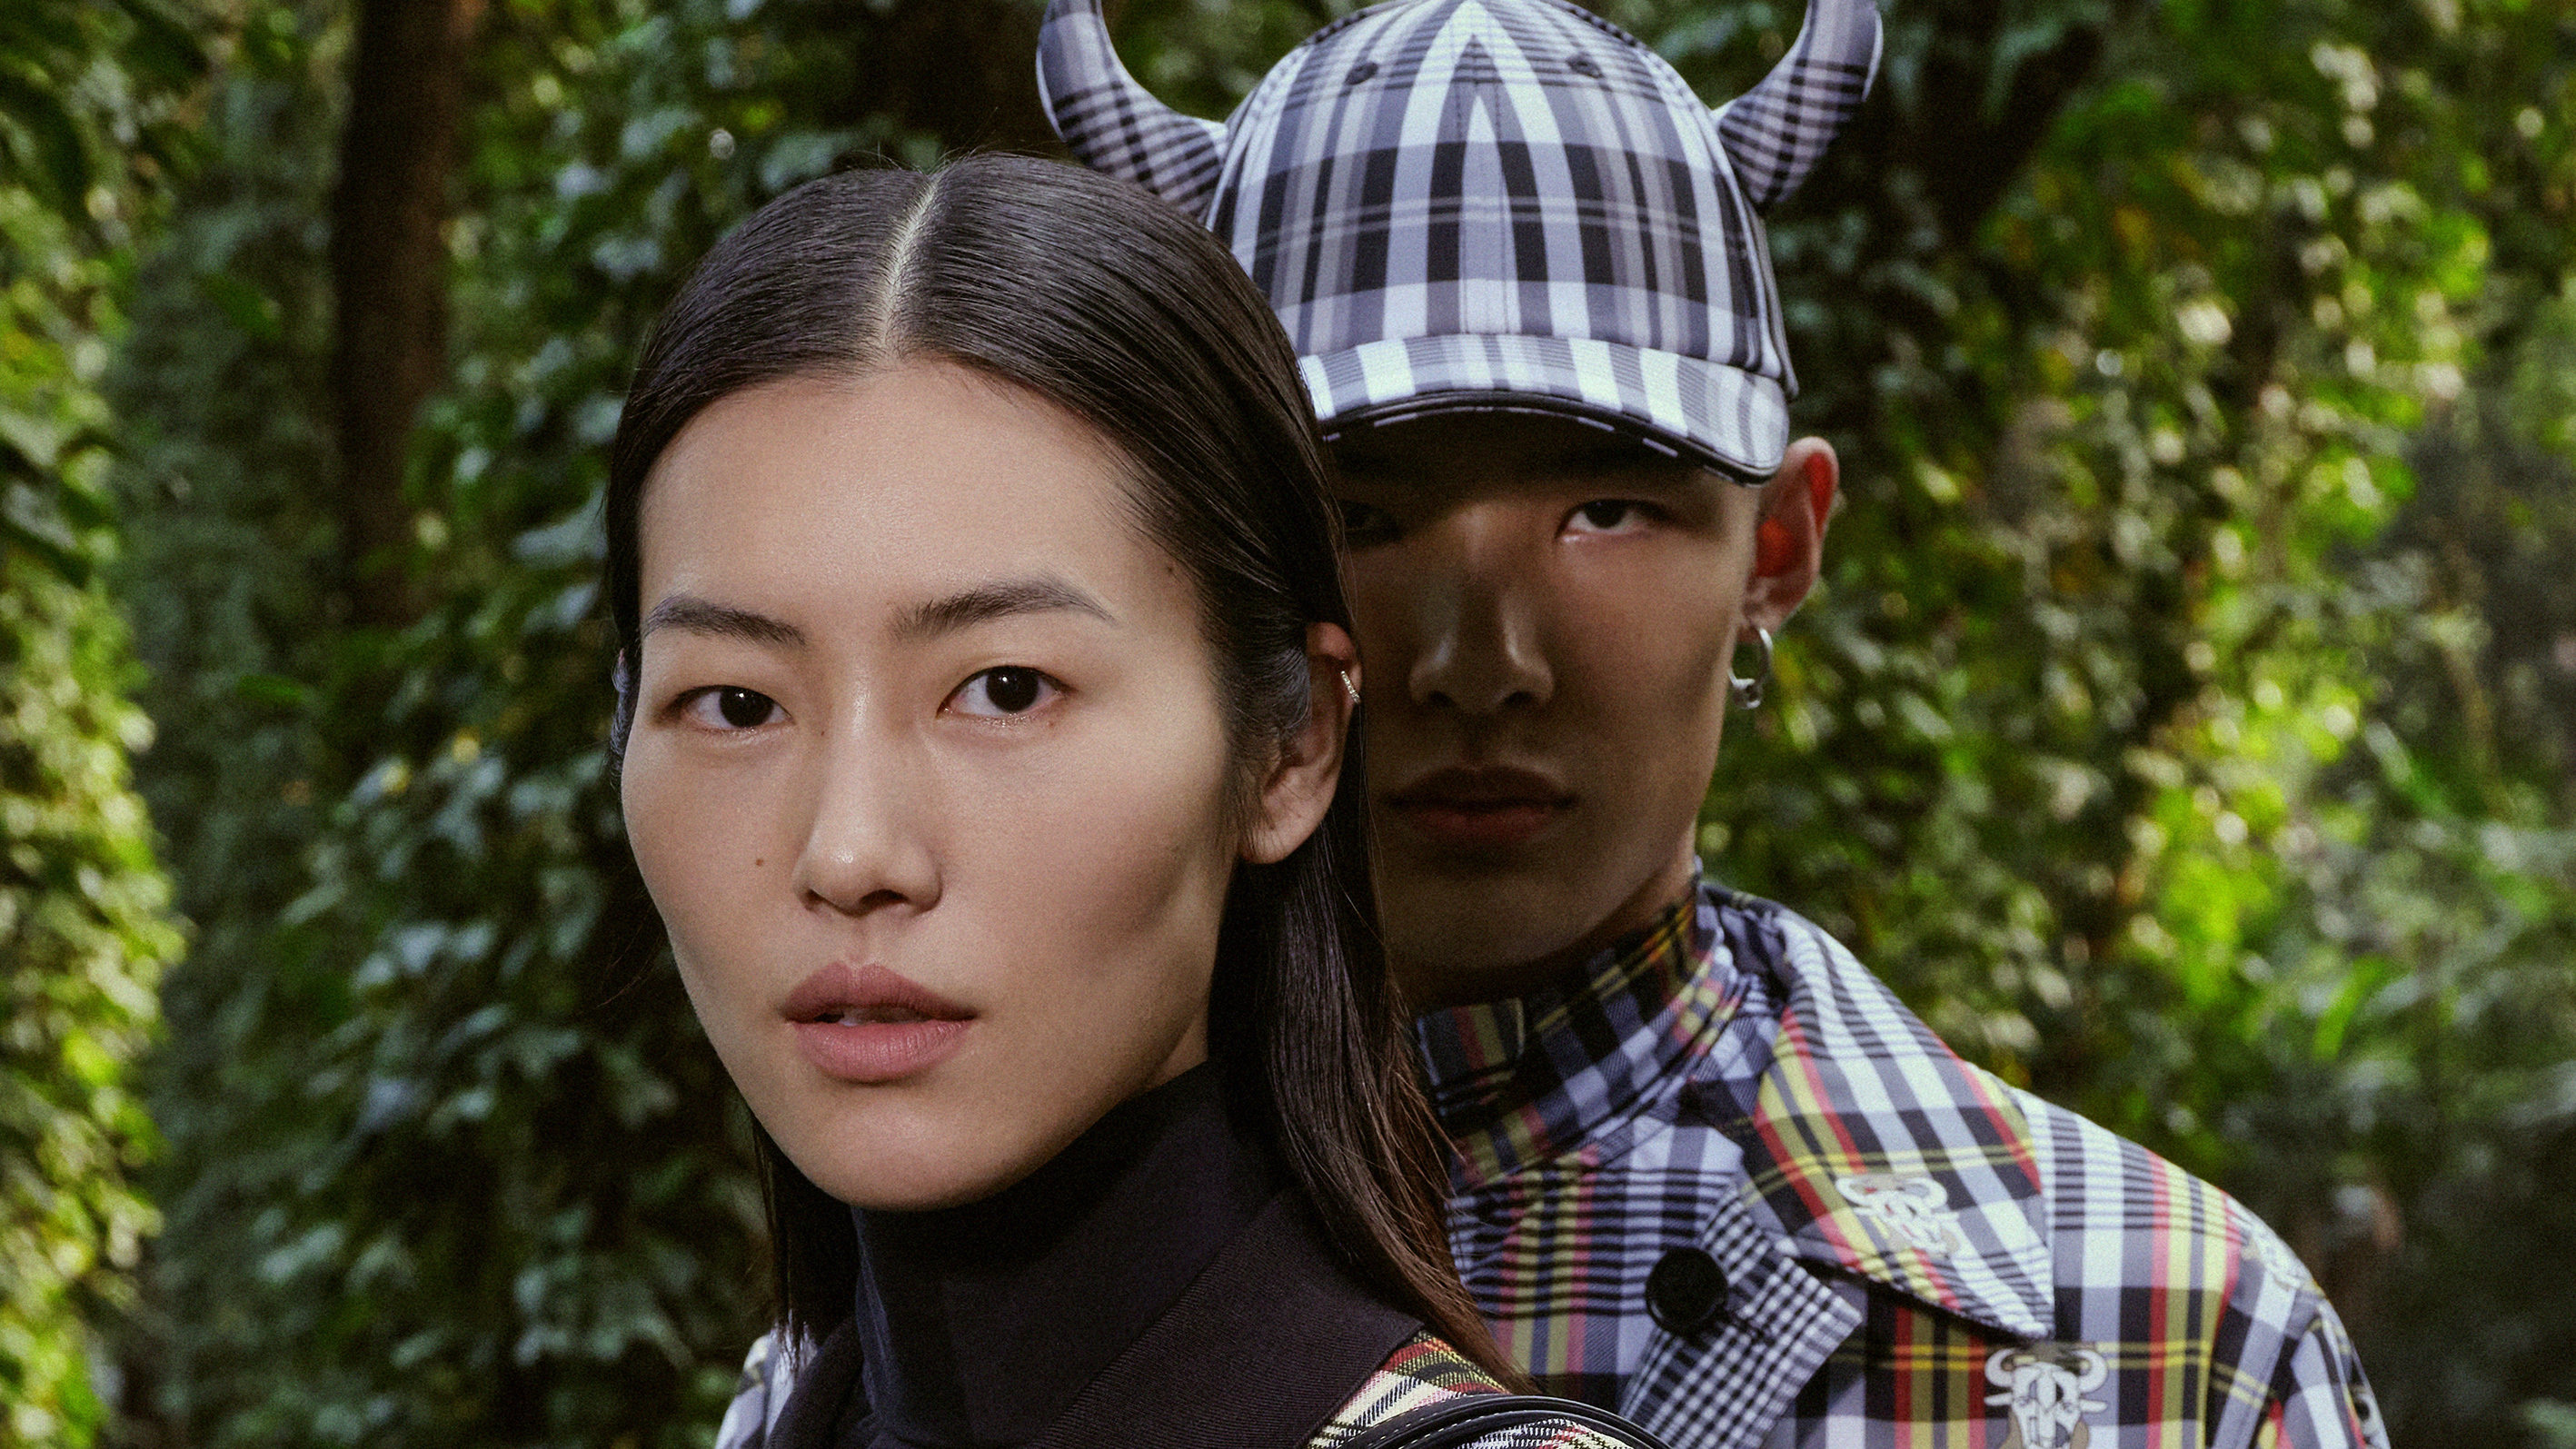 Burberry Launches Film In Celebration of Chinese New Year - Grazia USA